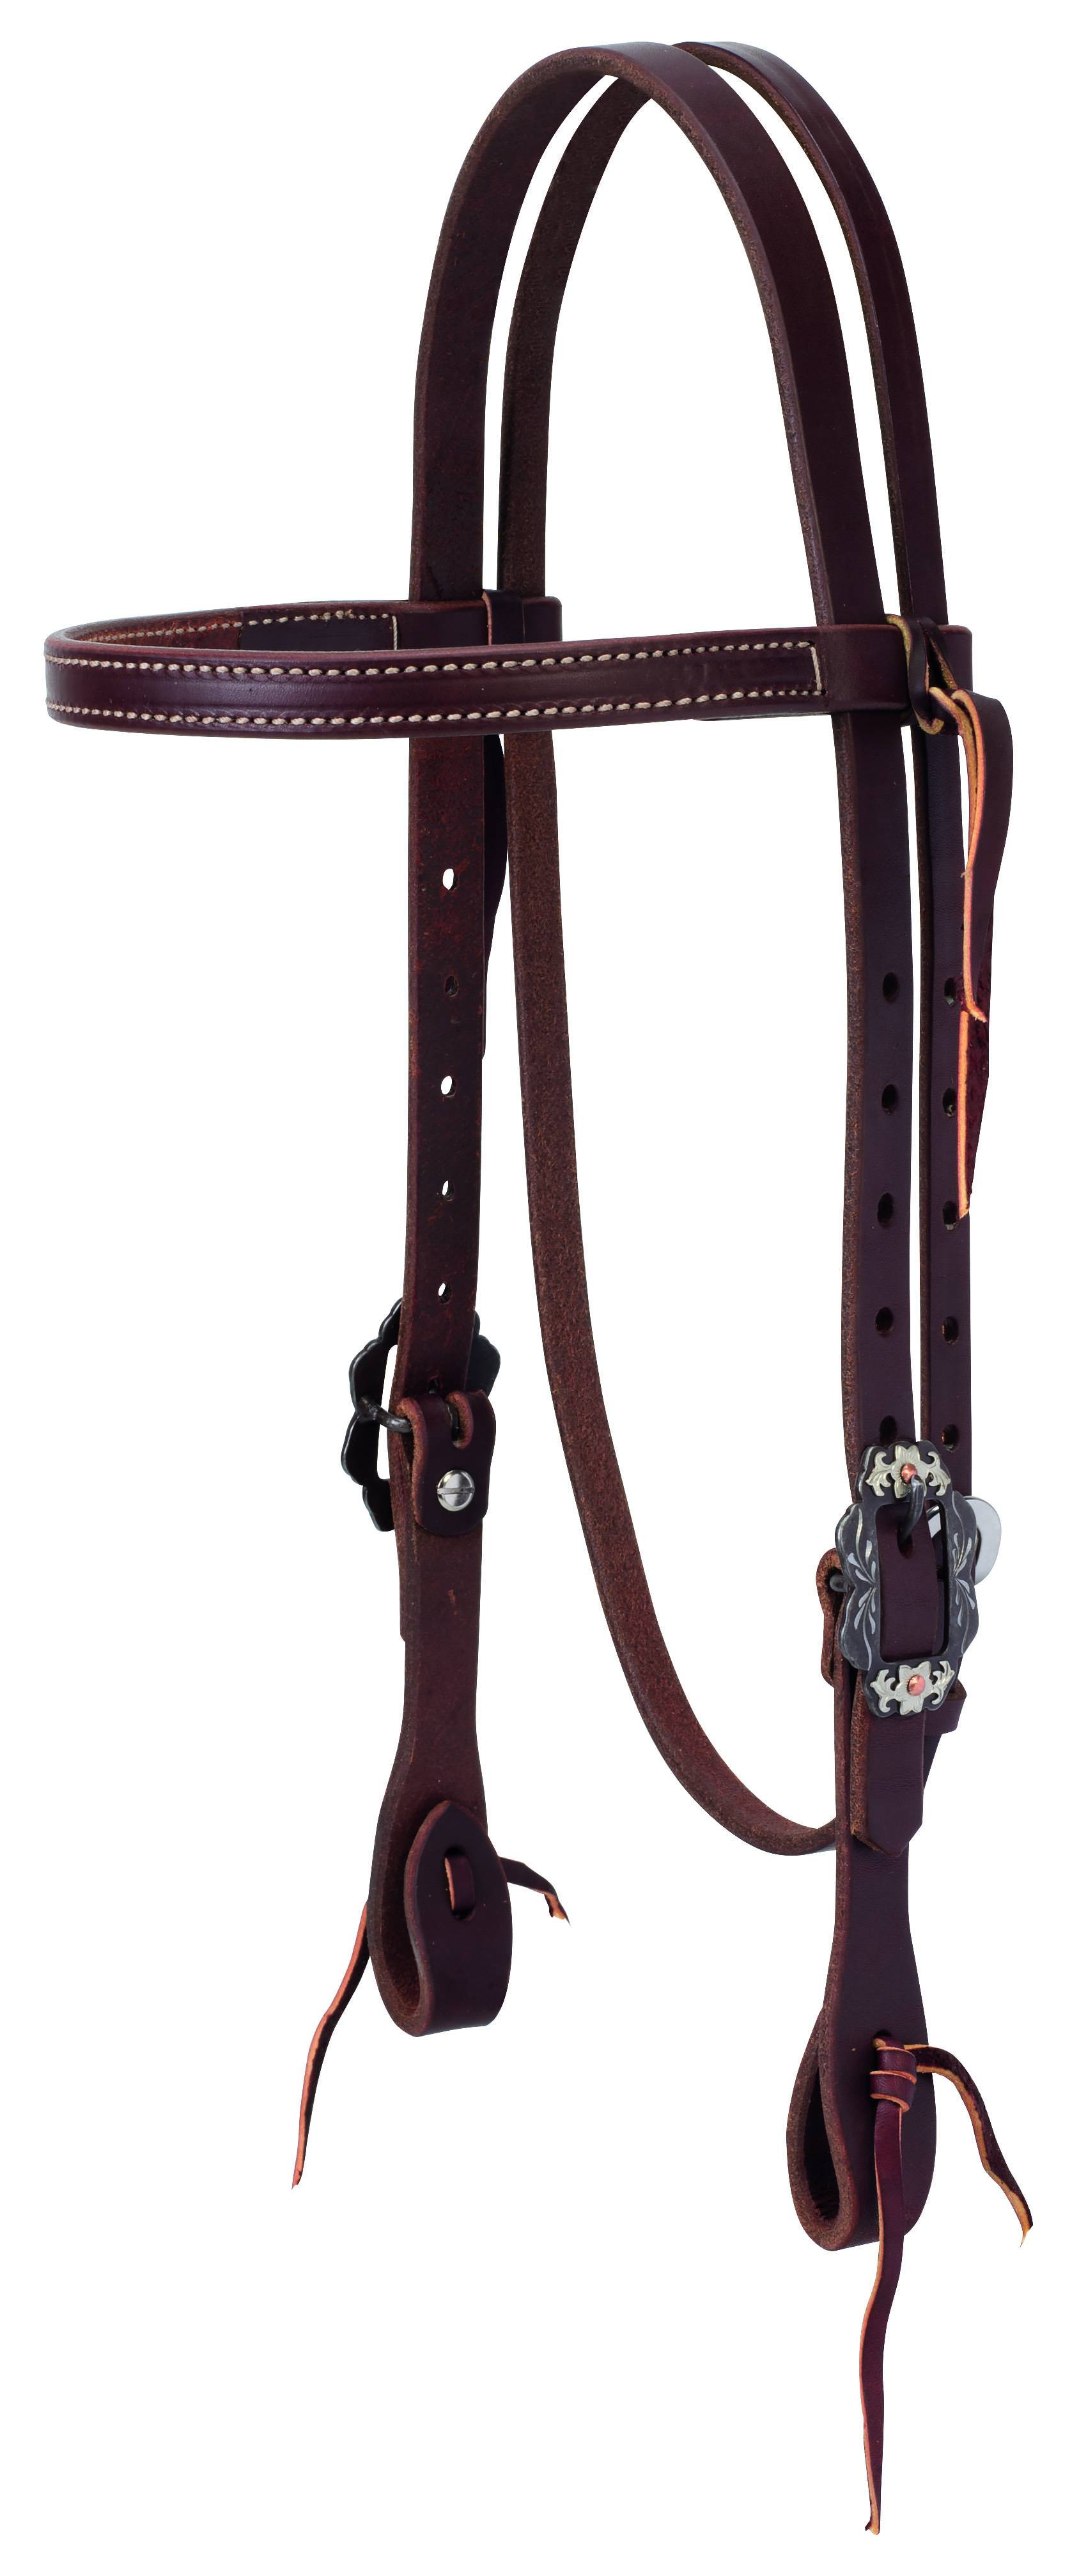 Weaver Working Tack Straight Browband Headstall - Buffed Brown Hardware